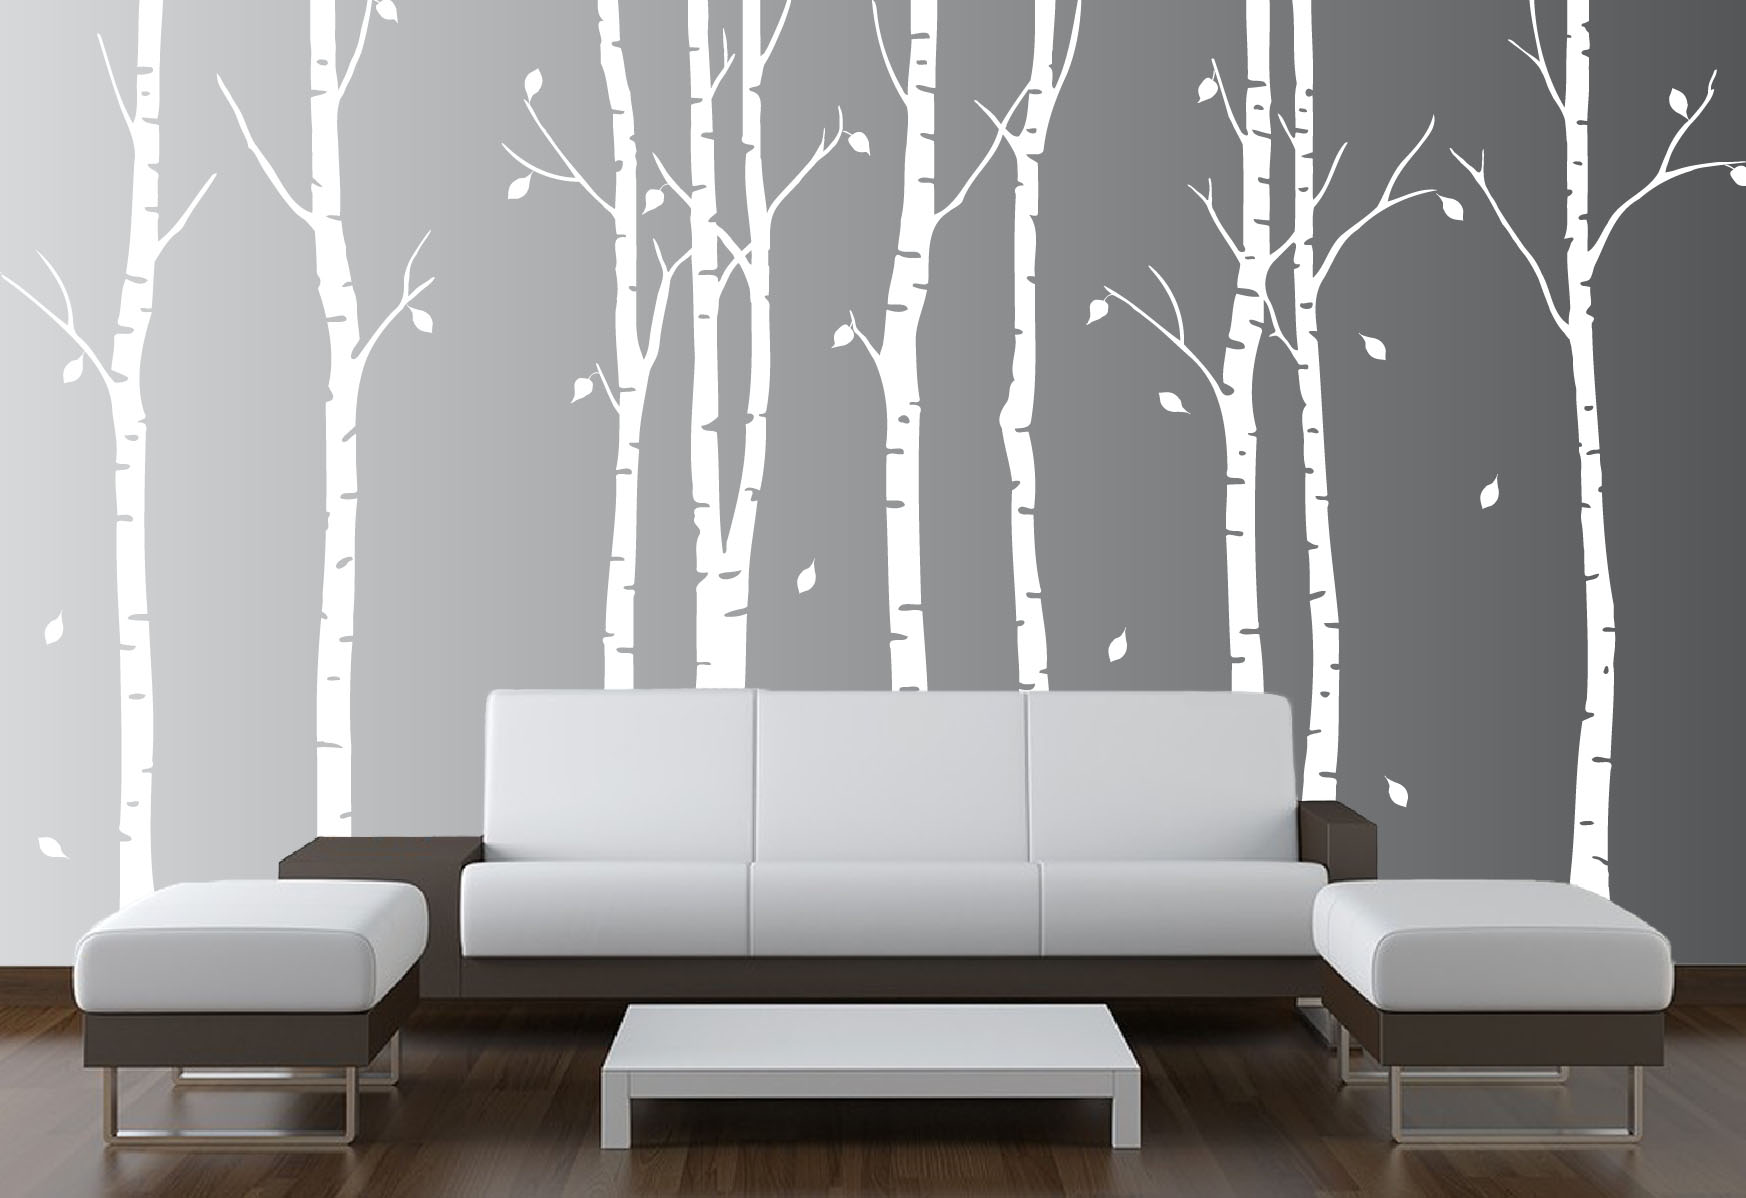 Large wall birch tree nursery decal forest kids vinyl for Large tree template for wall